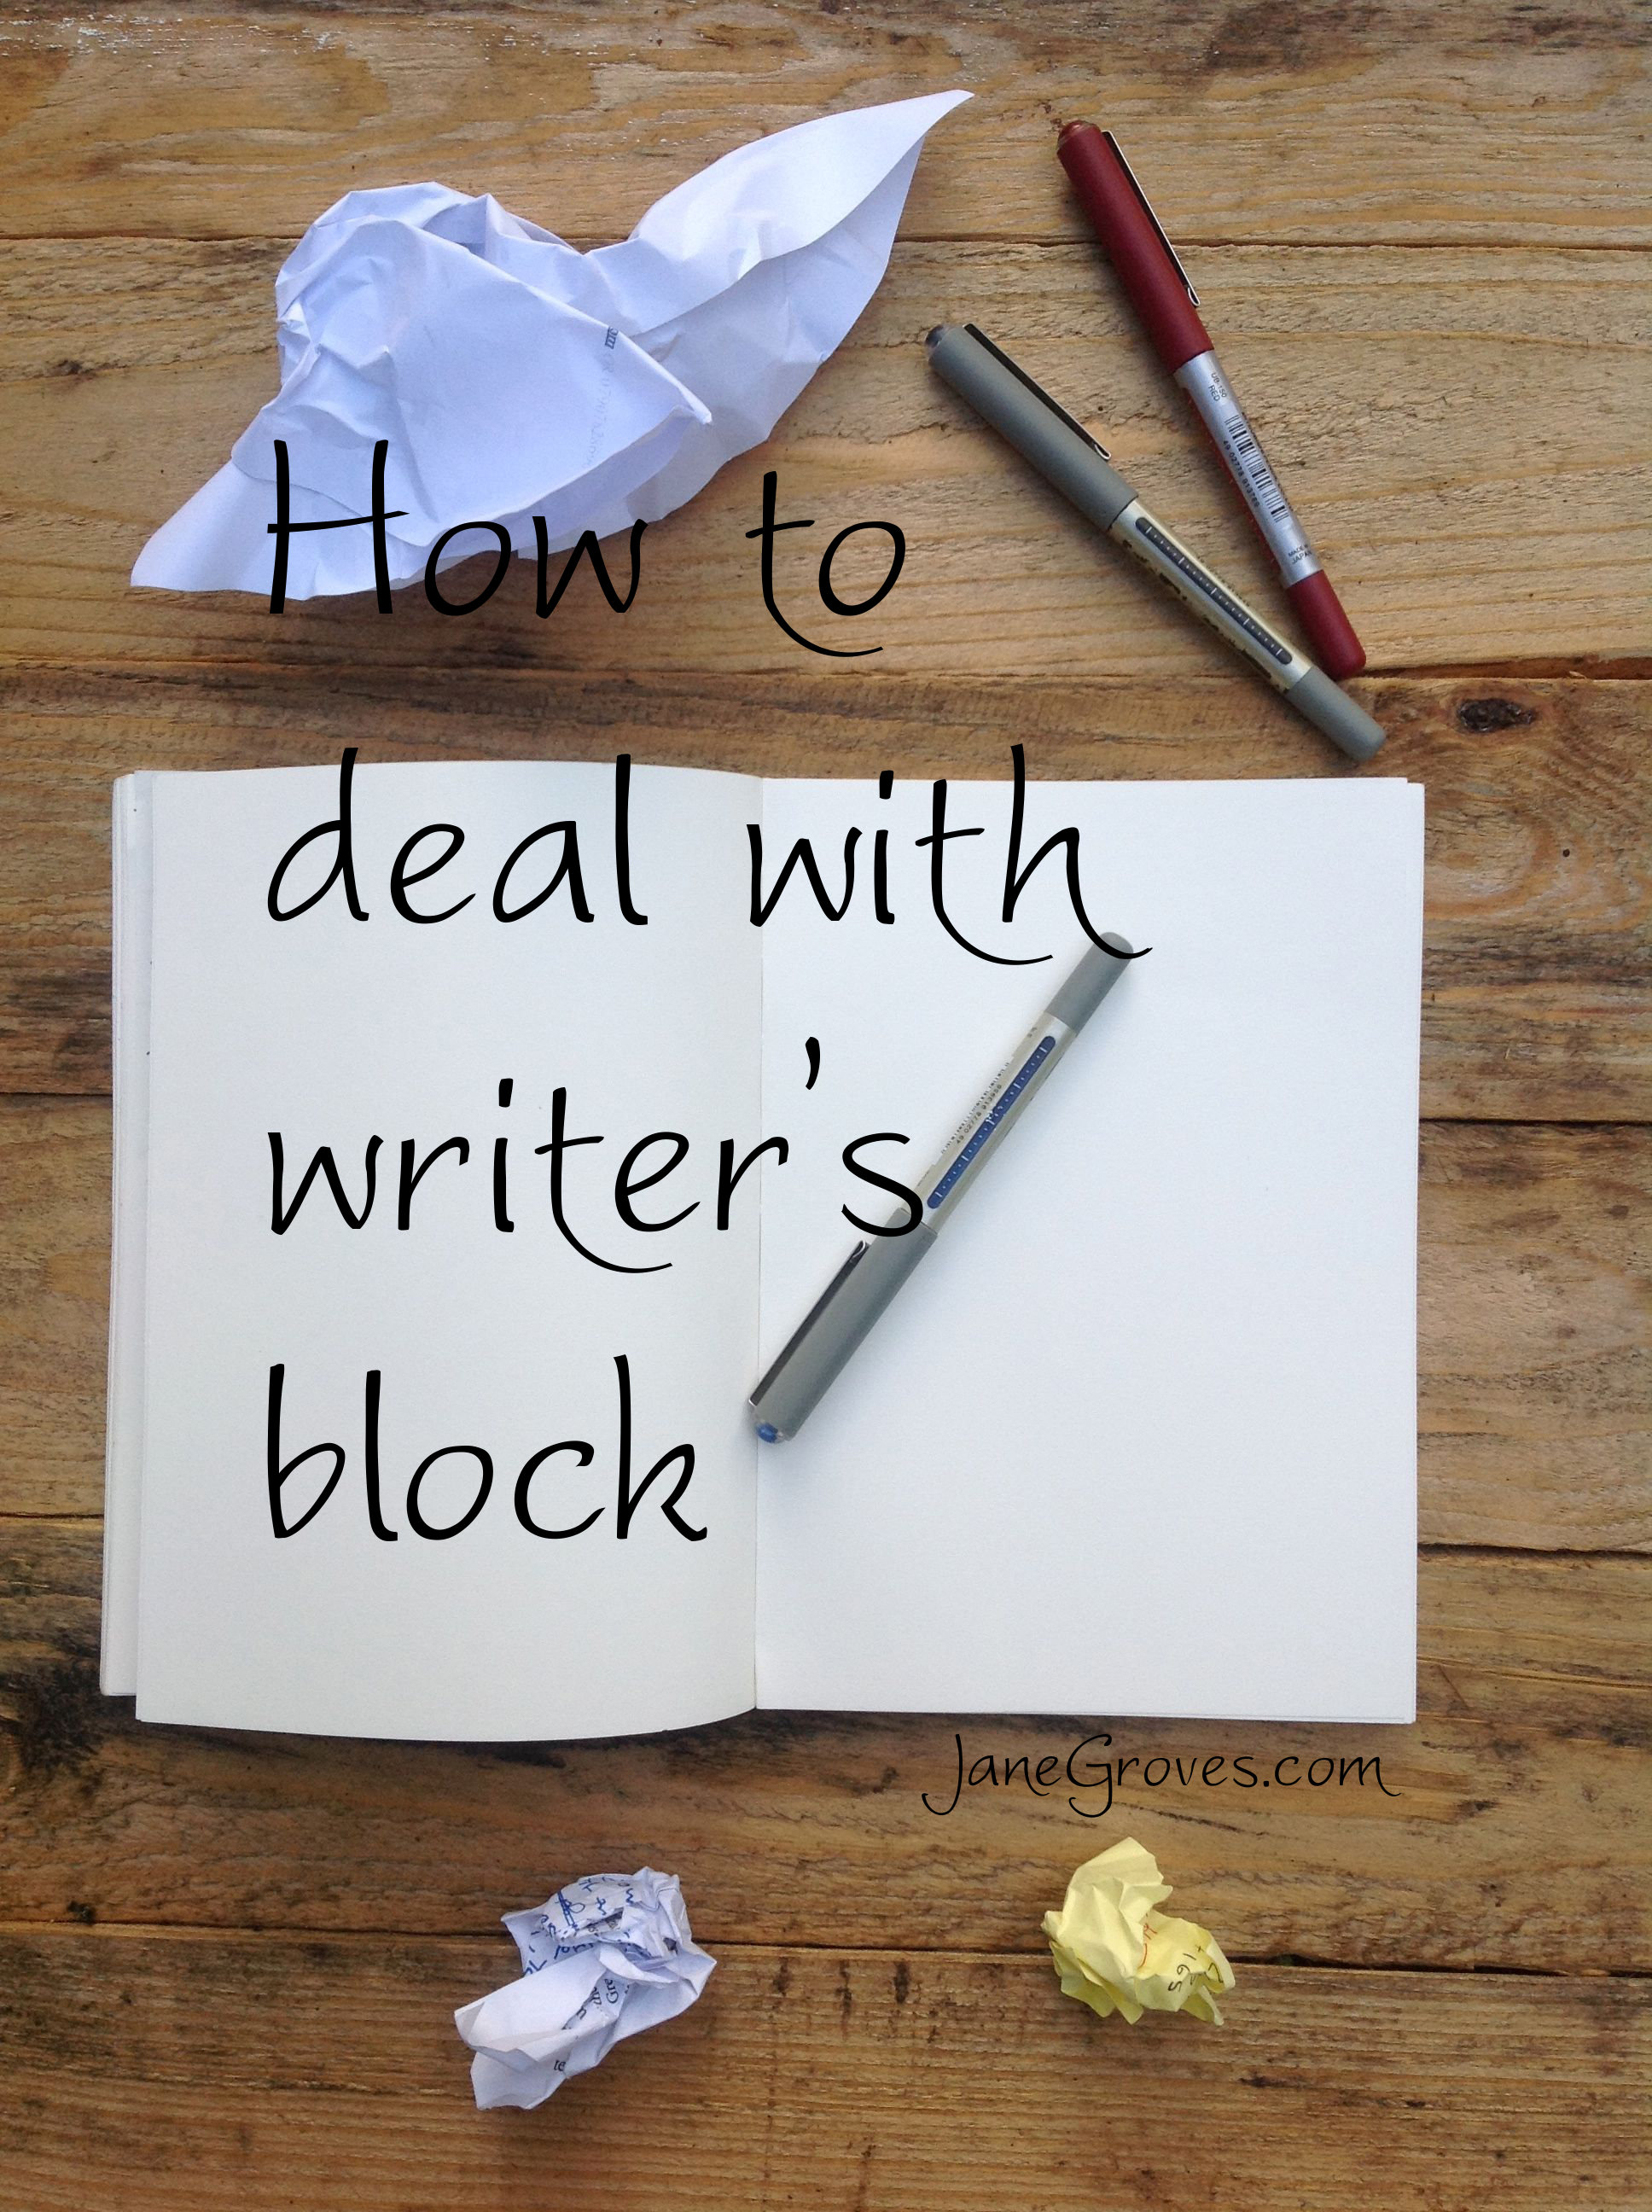 how to deal with writer's block. Some tips that work for author Jane Groves.